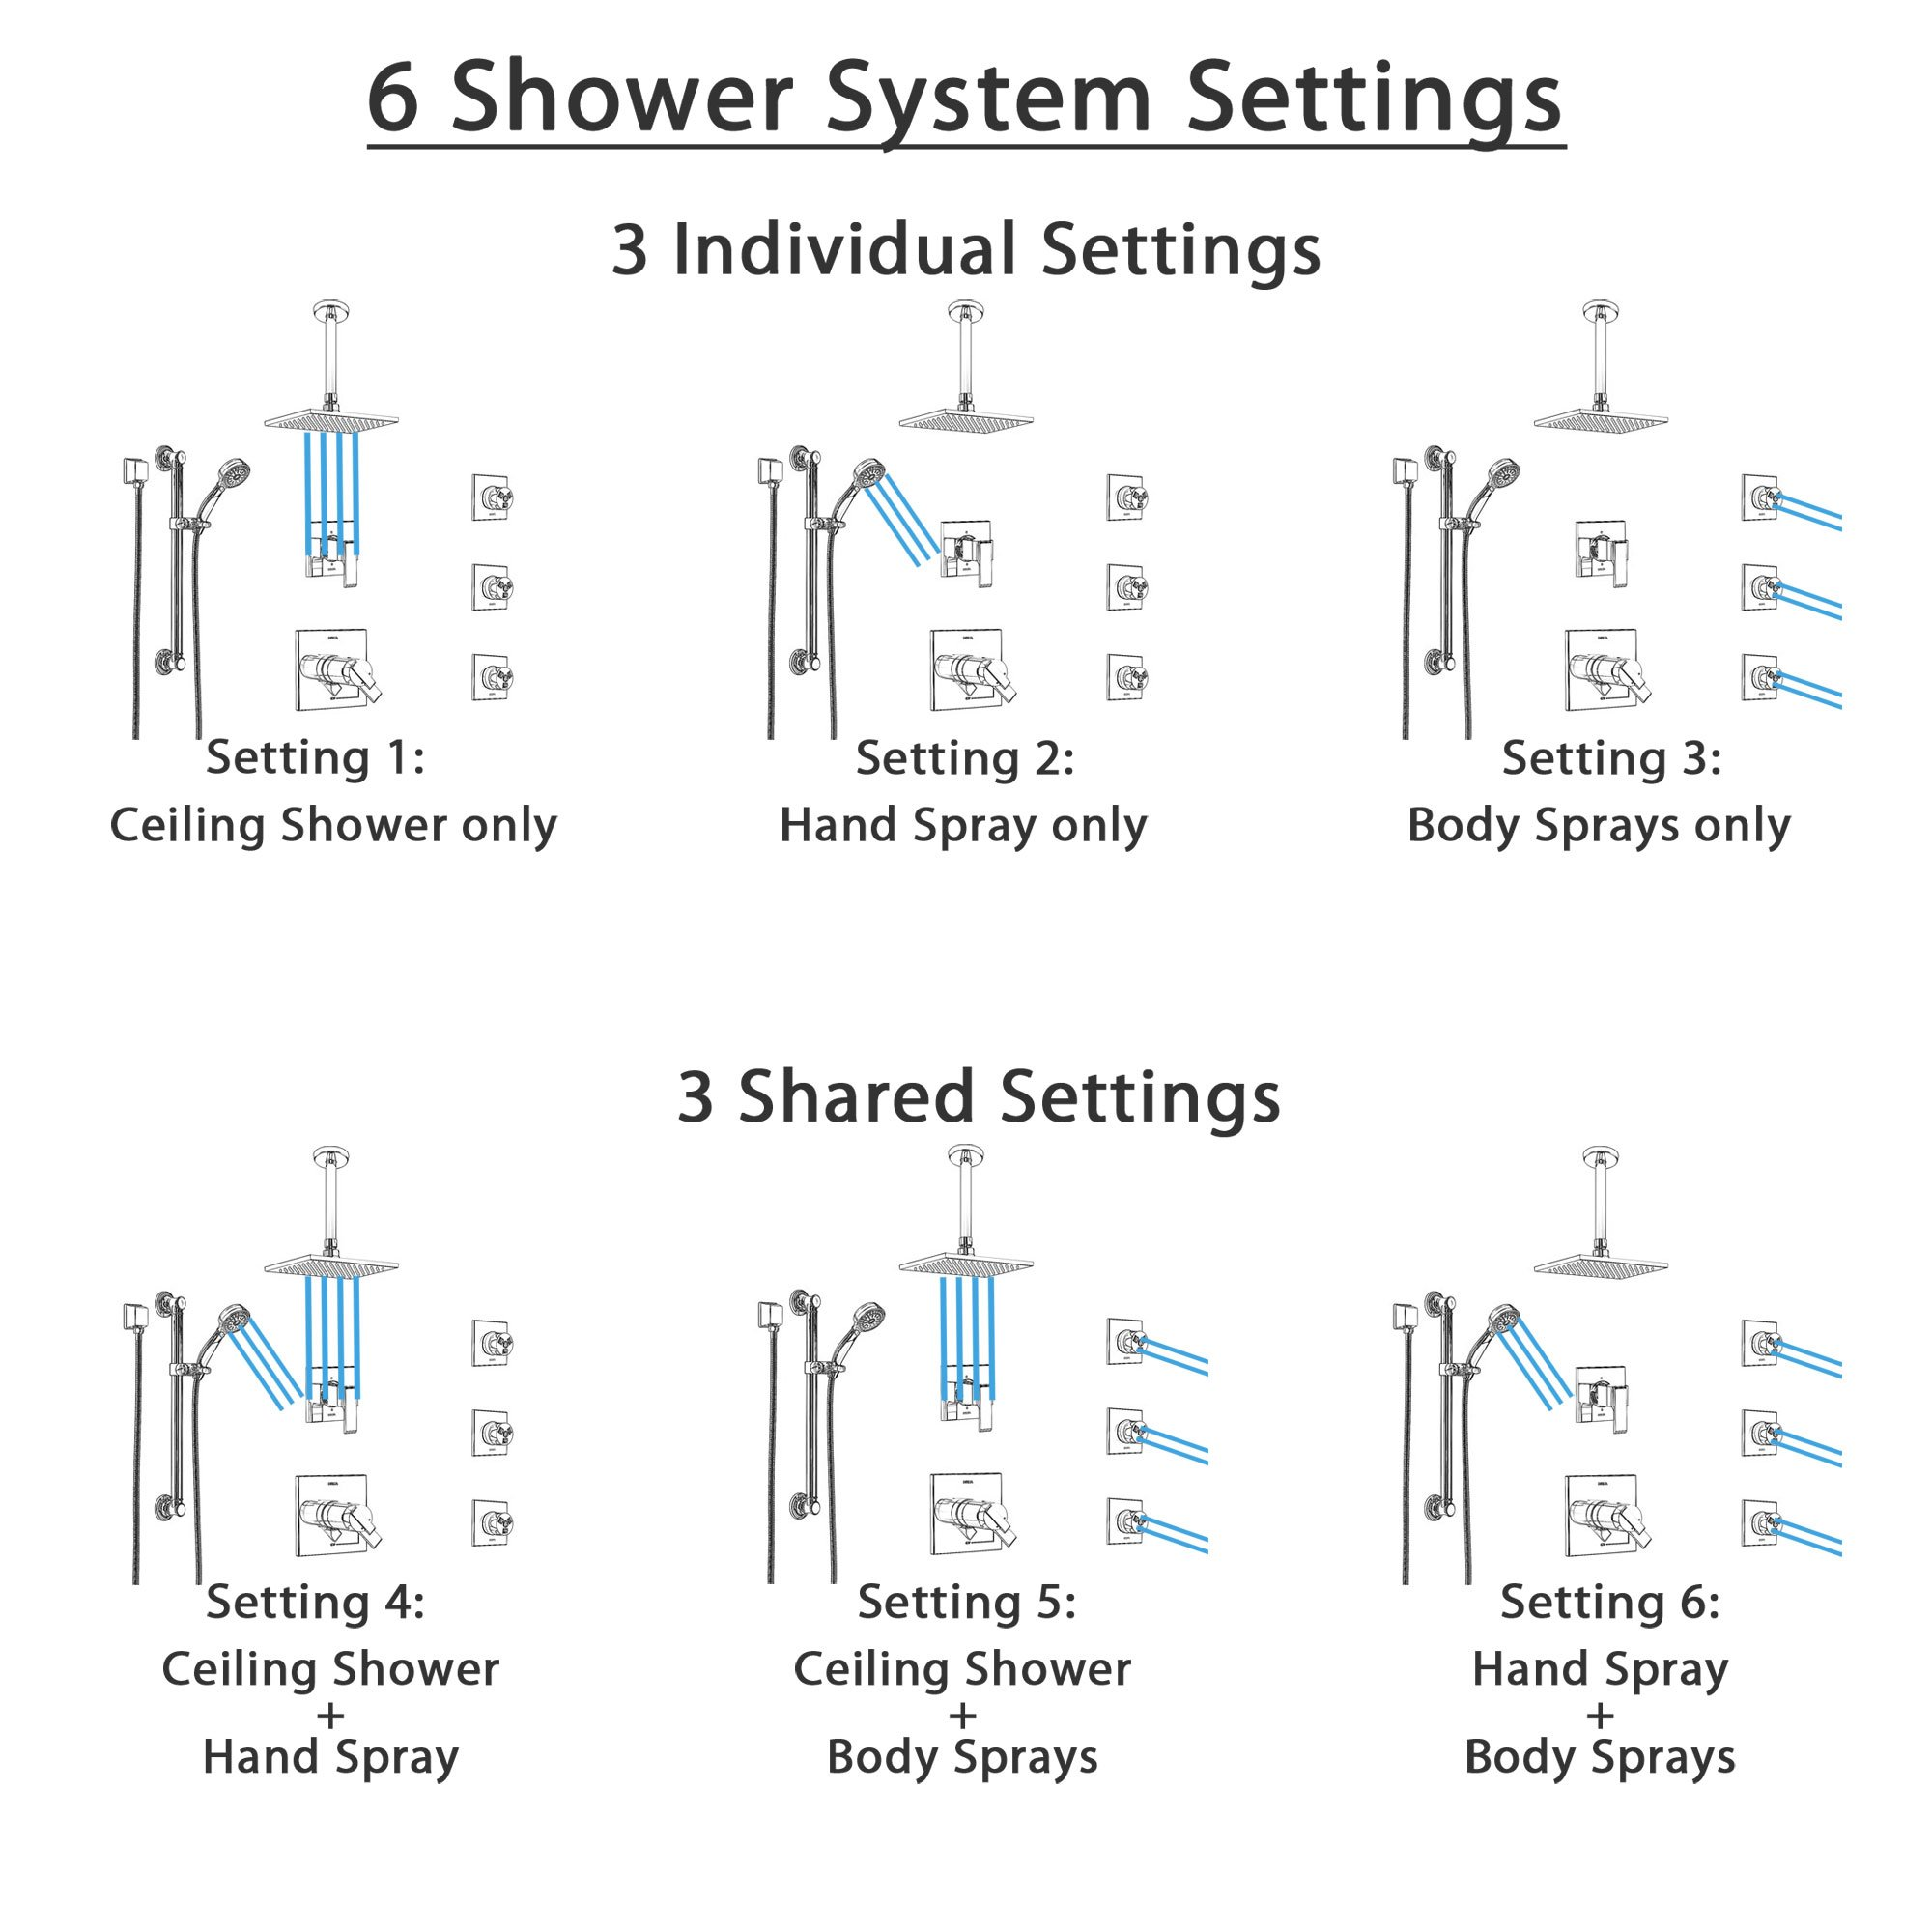 Function Illustration Graphic for Shower Systems with Body Sprays, Ceiling Mount Showerhead, and Hand Shower Settings